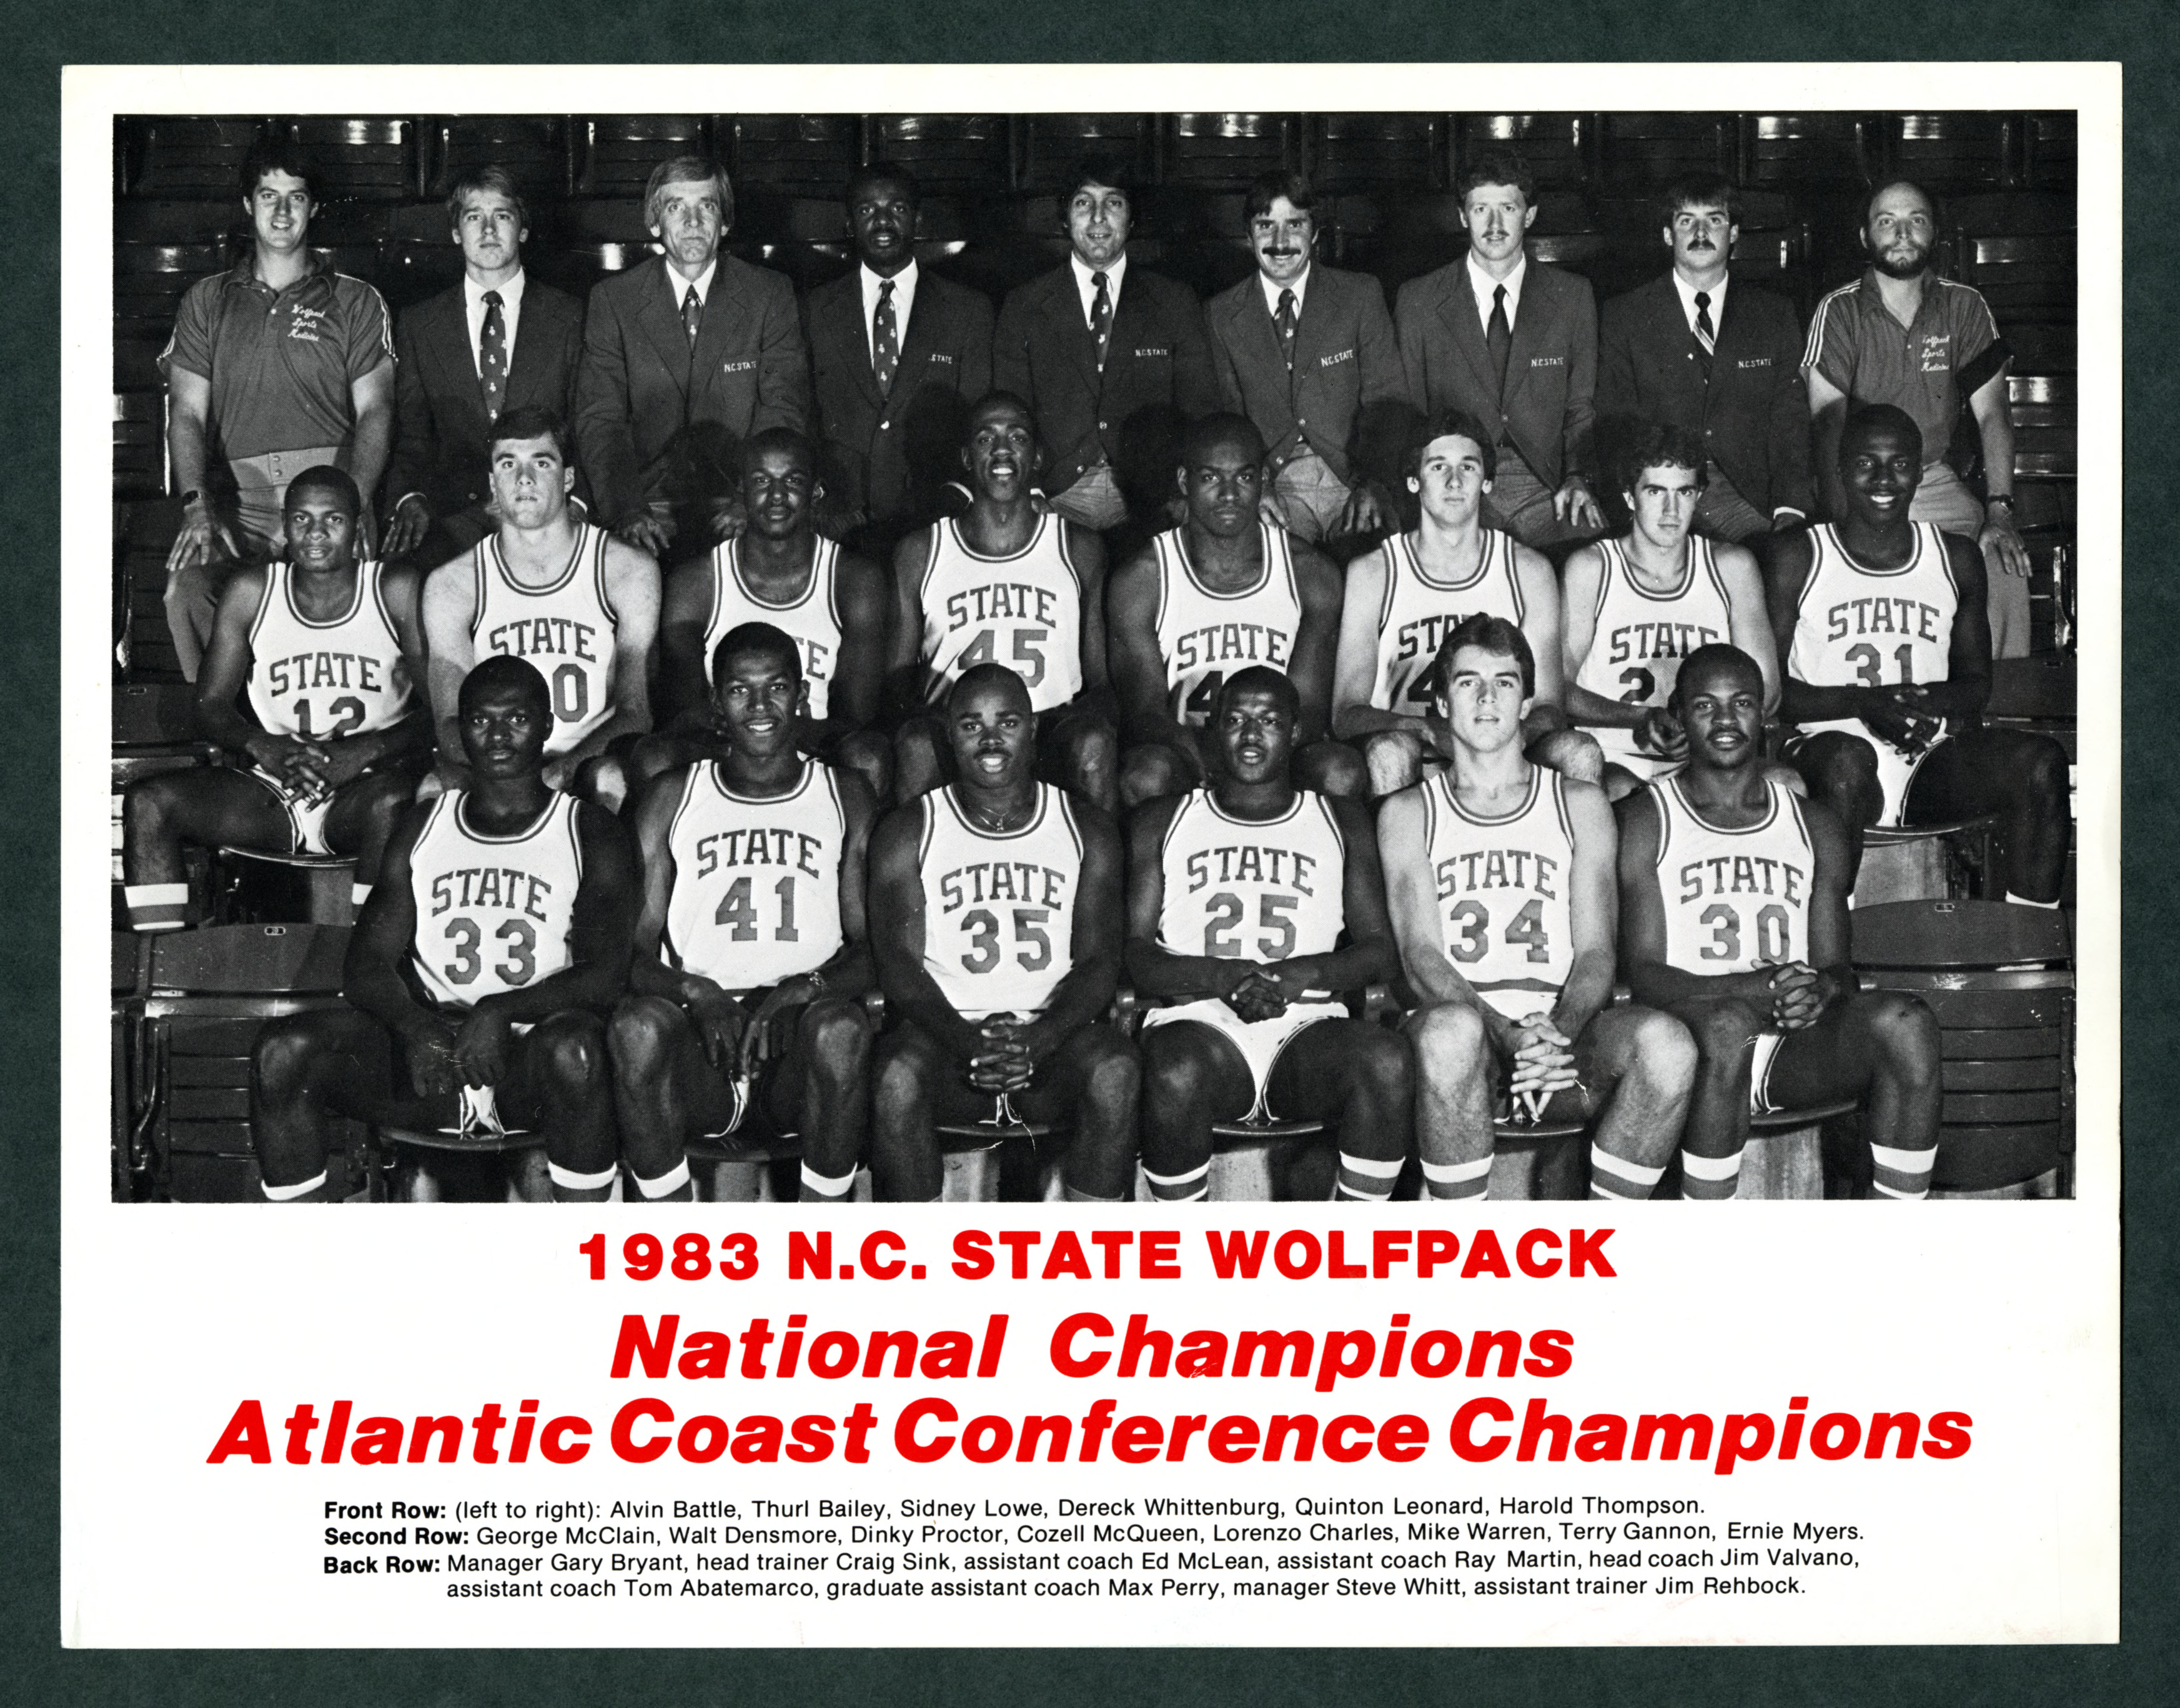 Men's basketball team roster, 1983 season